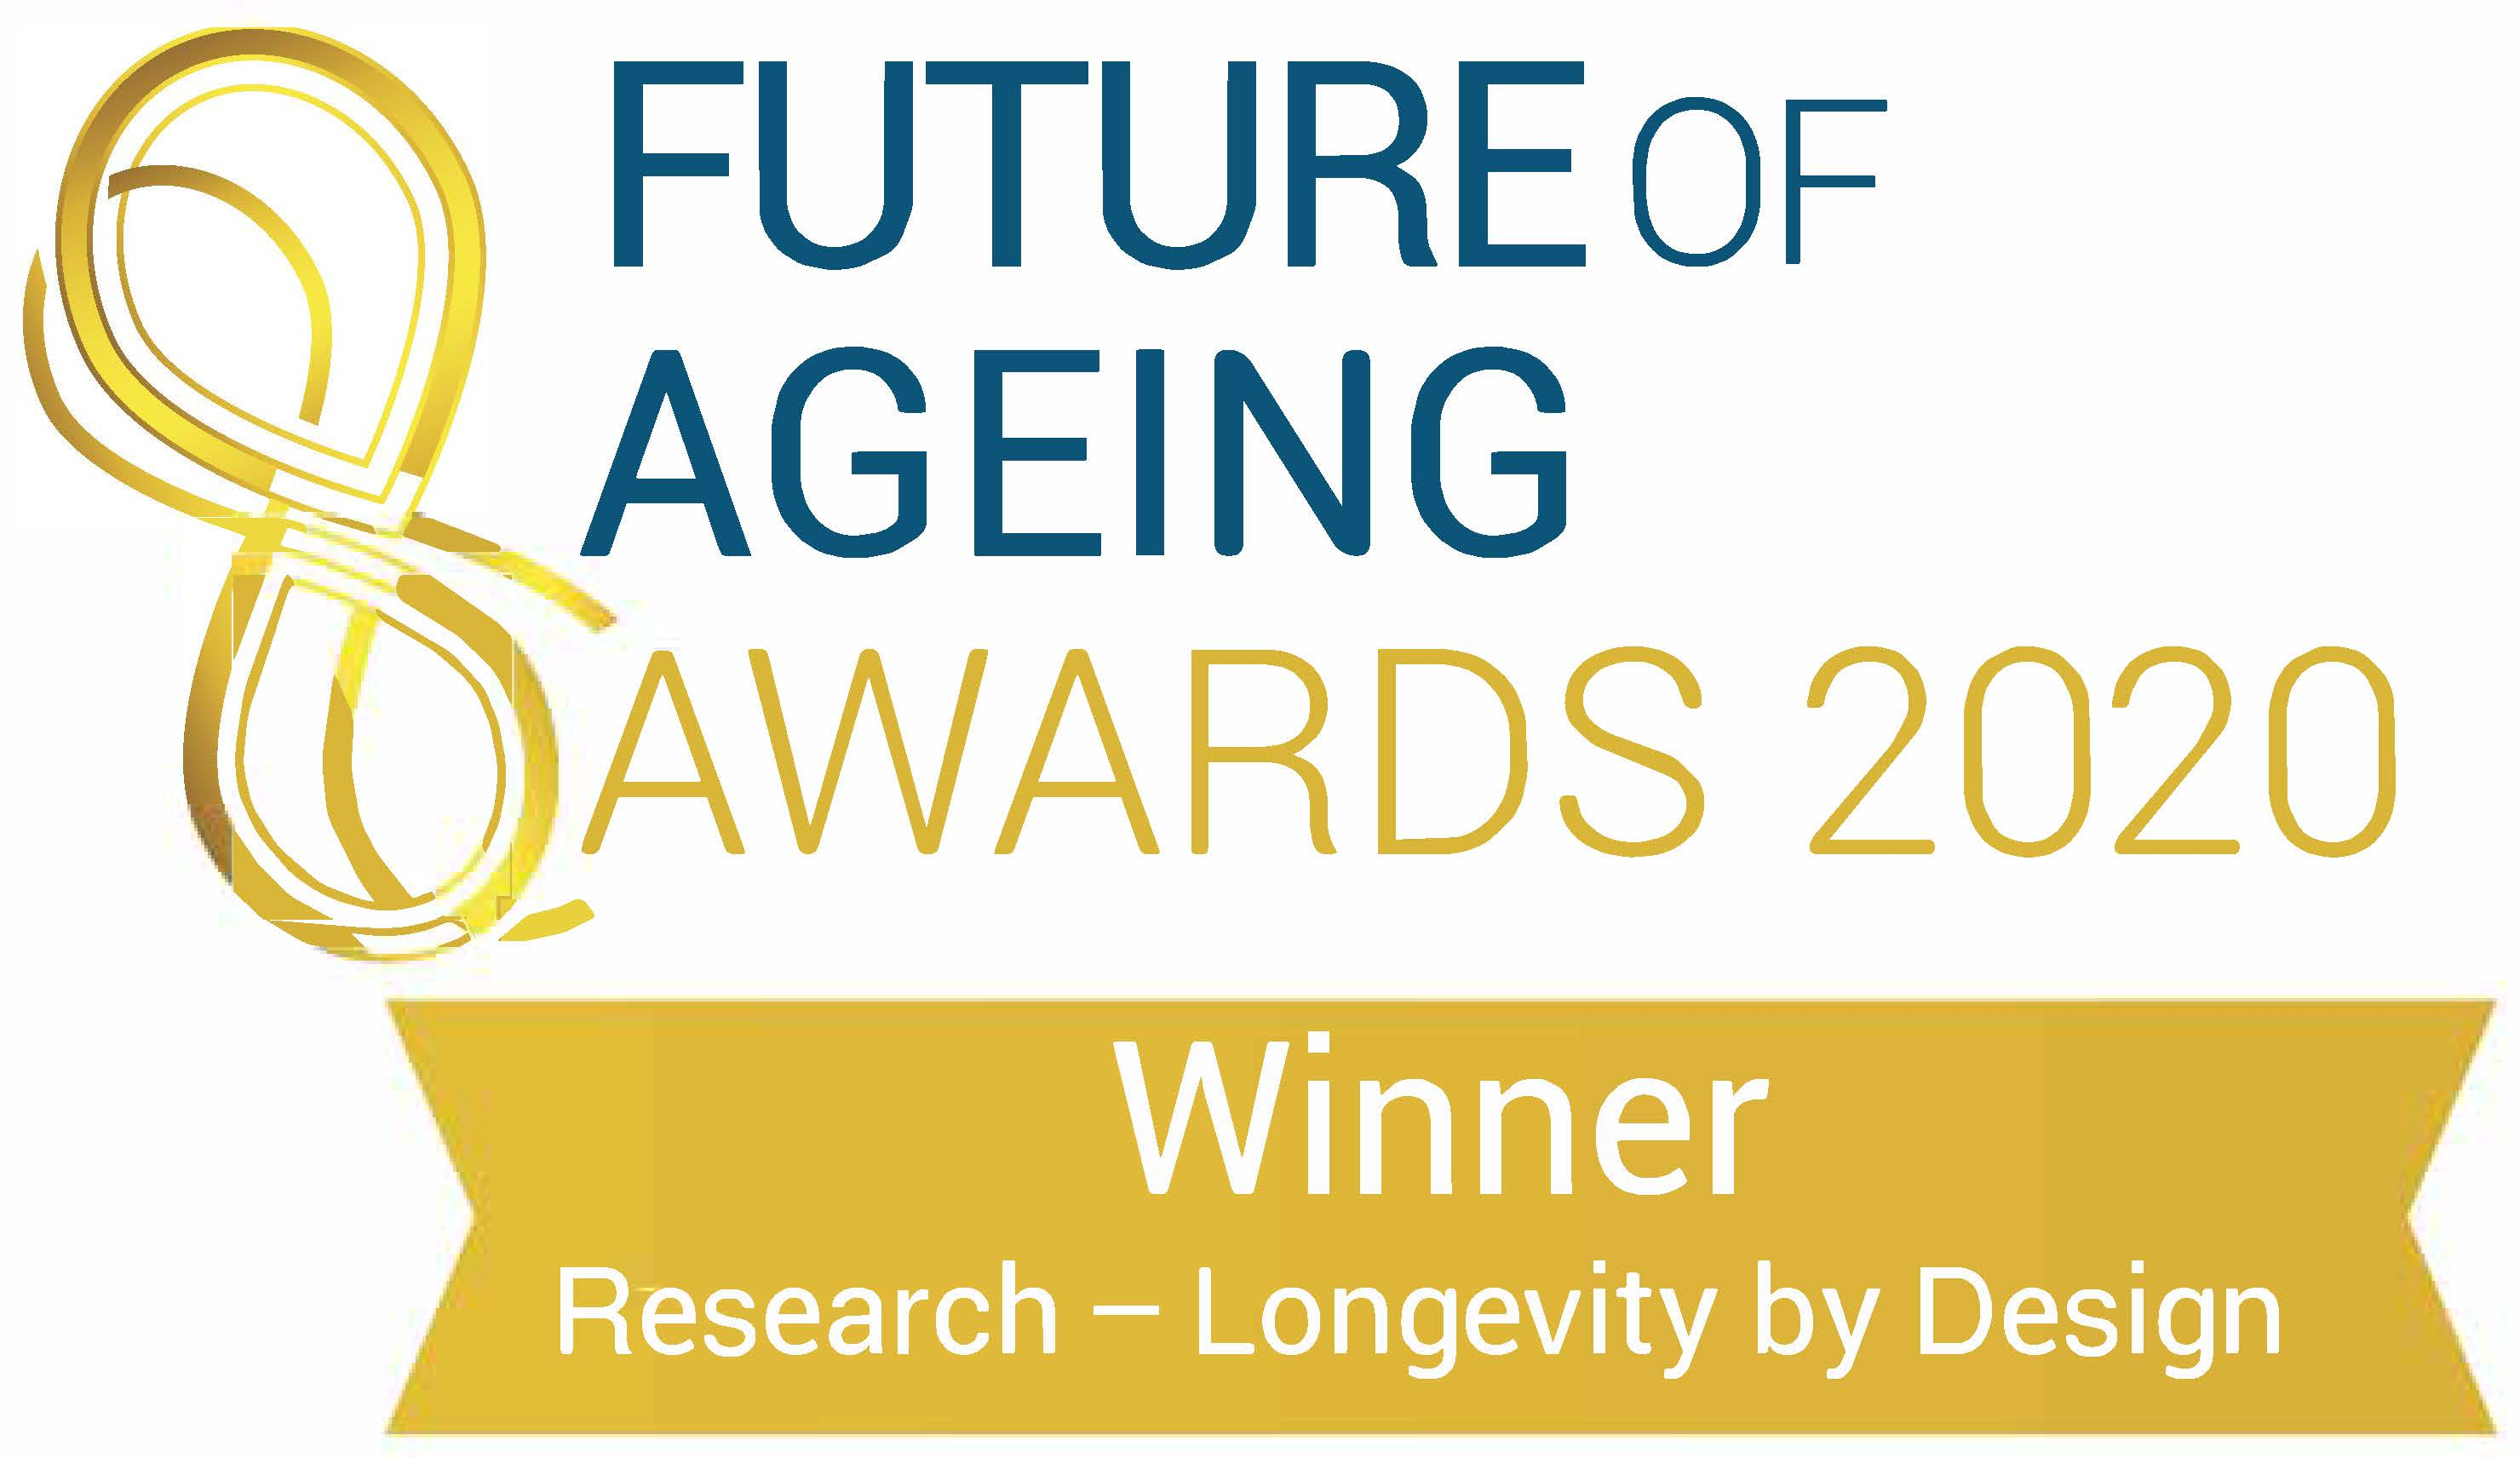 Future of Ageing Award Winner